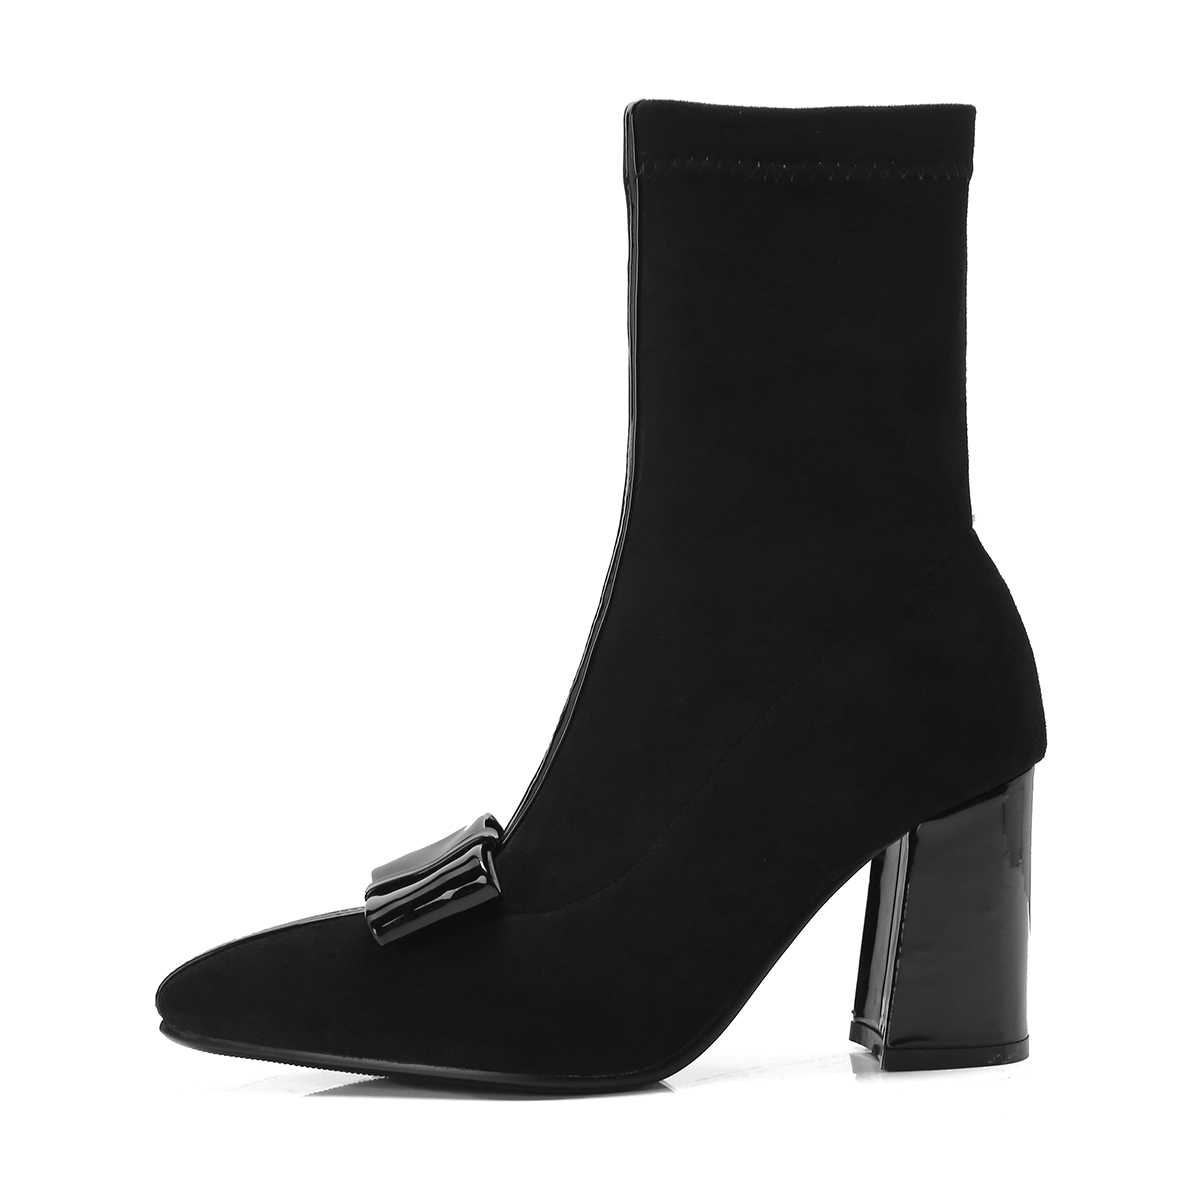 e9254846e6 ... Women Slip On Thick High Heel Ankle Boots Fashion Bow Knot Mixed Colors  Pointed Toe Fall ...